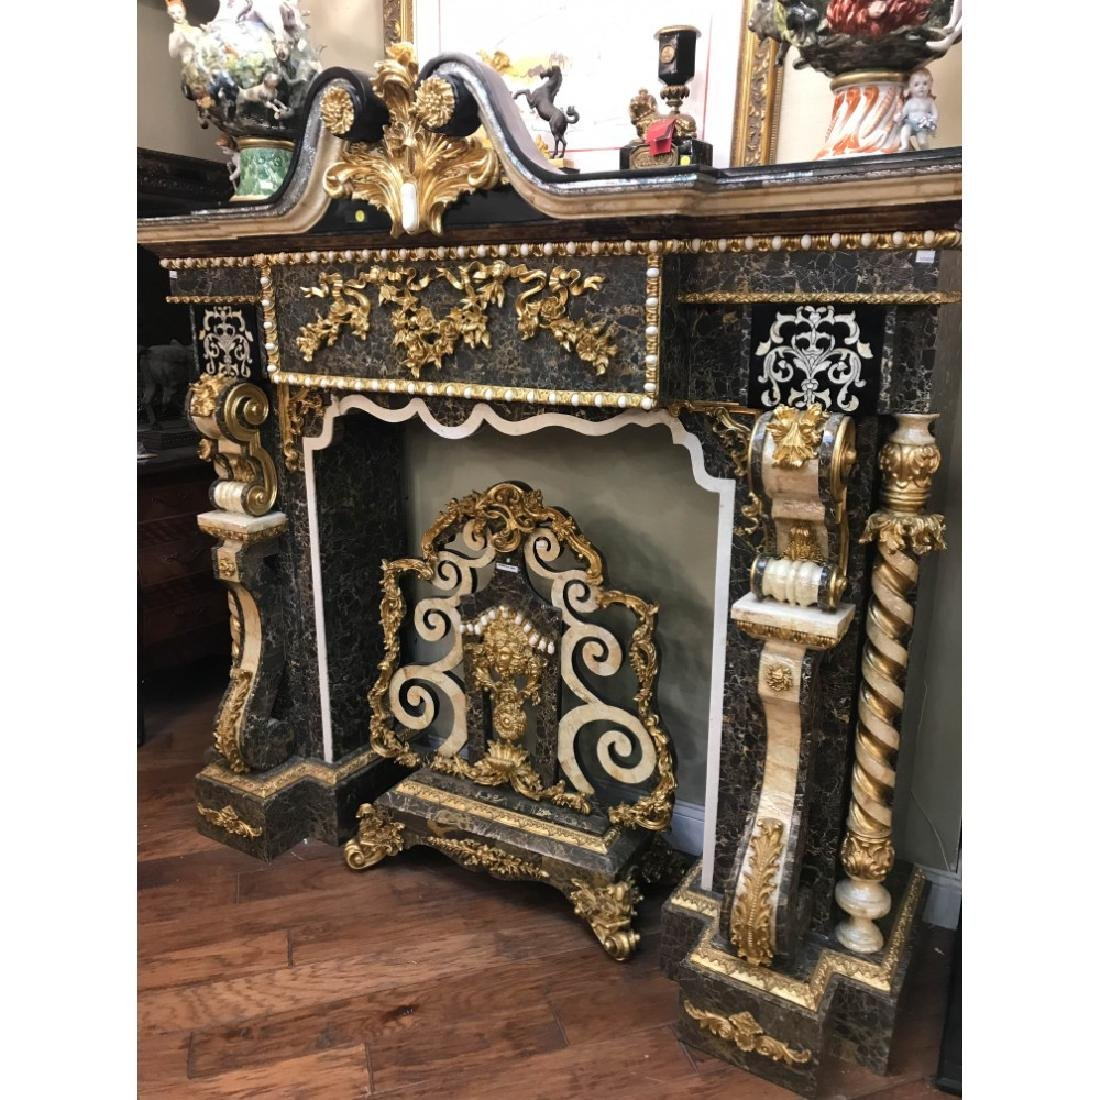 Marble, Mother of Pearl, Gold Leaf Fireplace